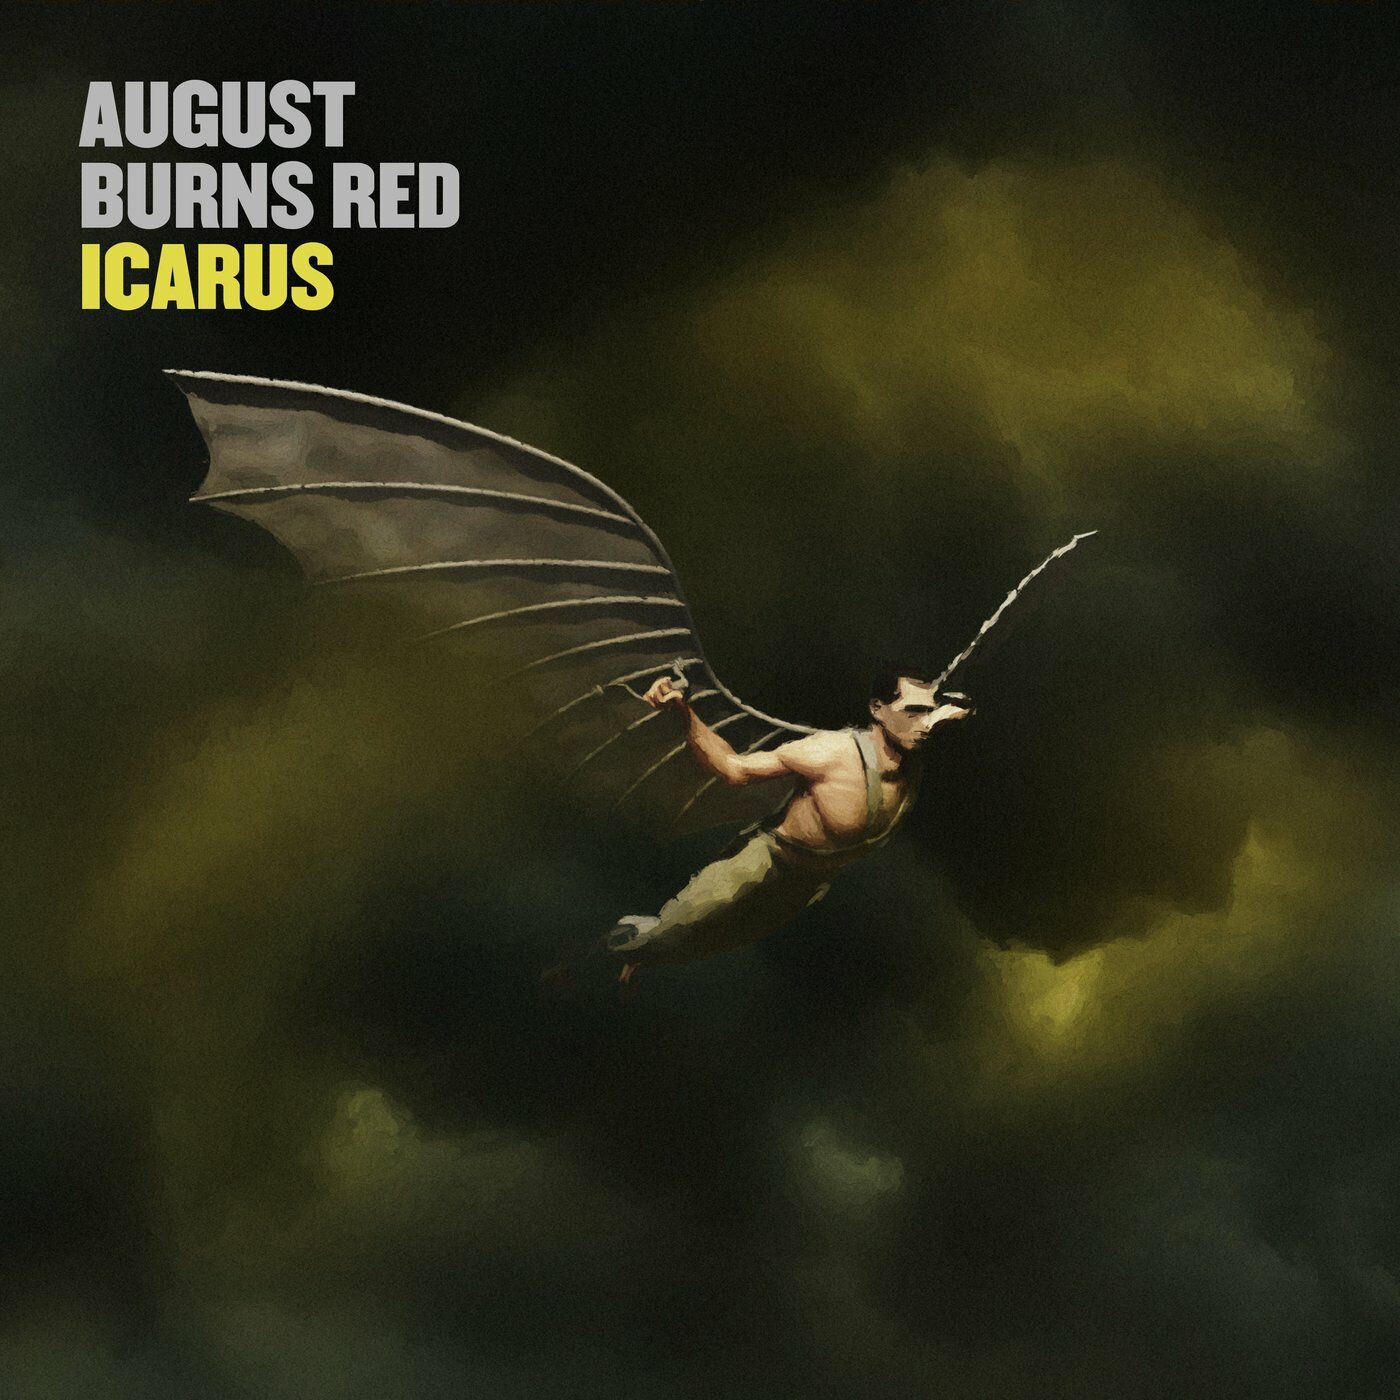 August Burns Red - Icarus [single] (2021)